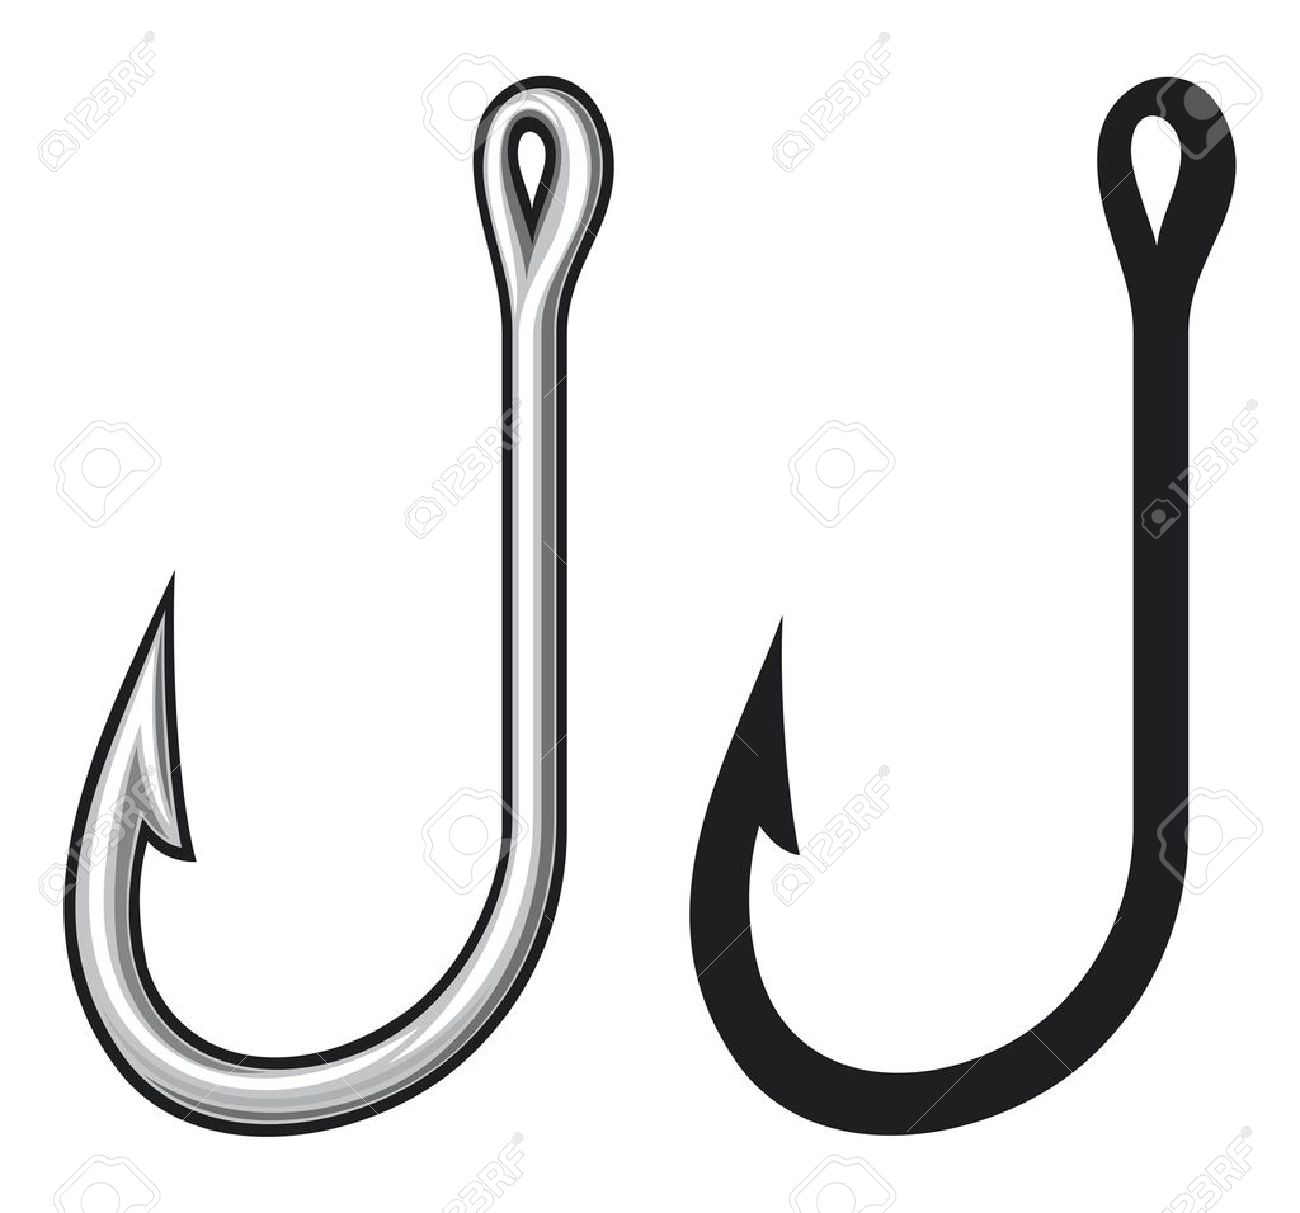 Free fish hook clipart vector royalty free Fish Hook Clipart   Free download best Fish Hook Clipart on ... vector royalty free